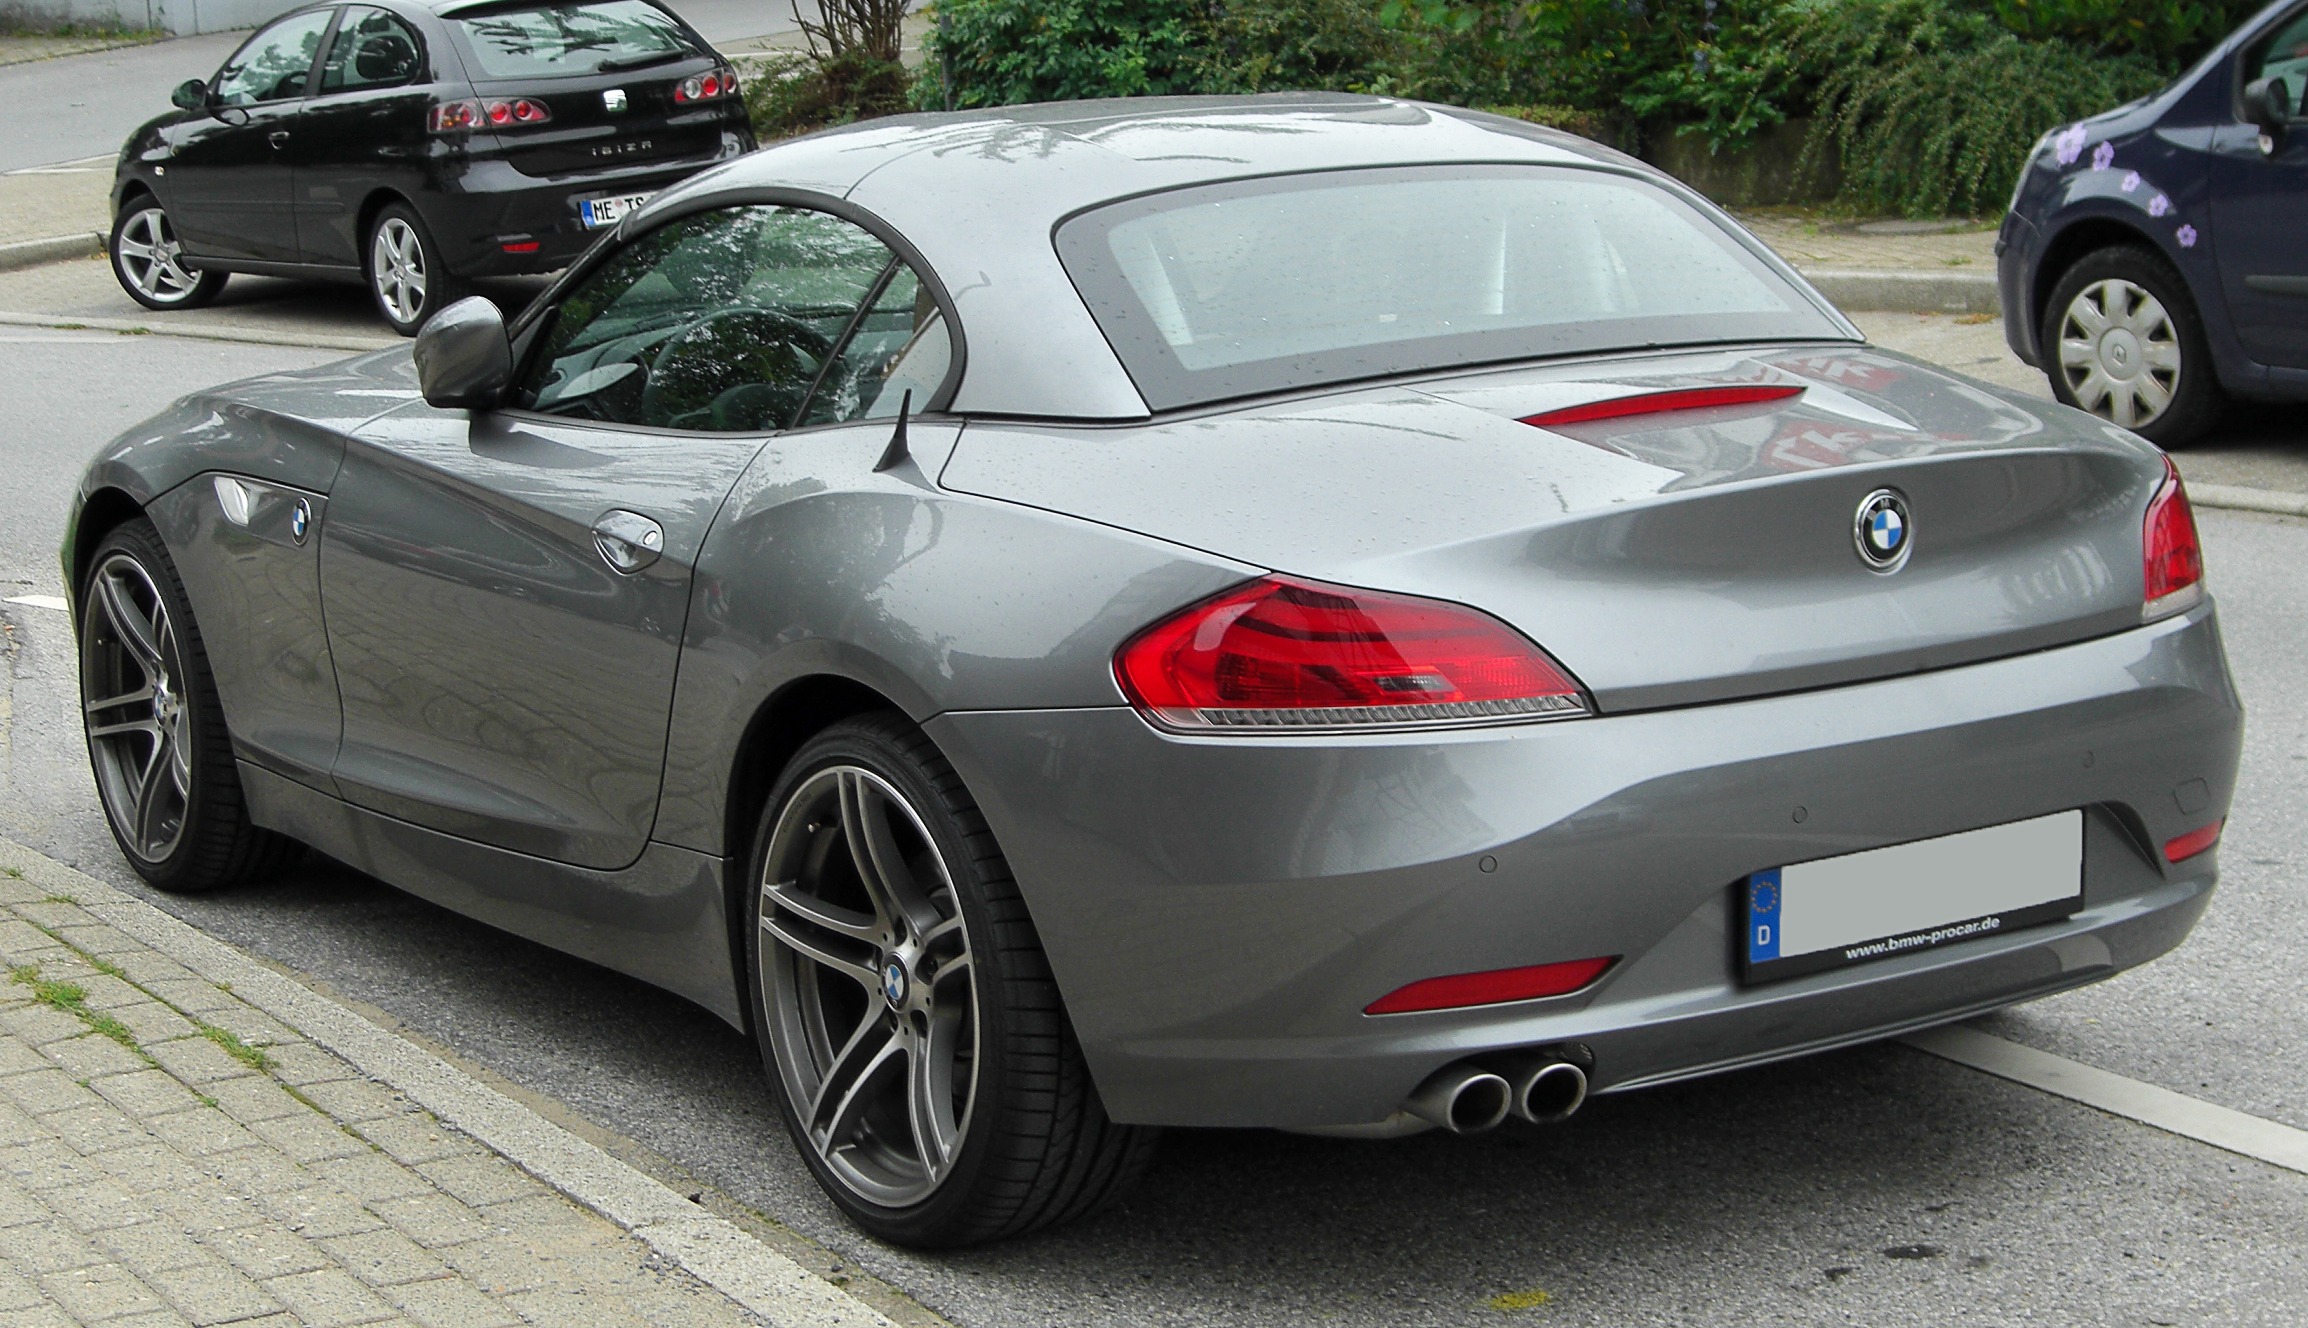 File:BMW Z4 (E89) rear 20100815.jpg - Wikimedia Commons